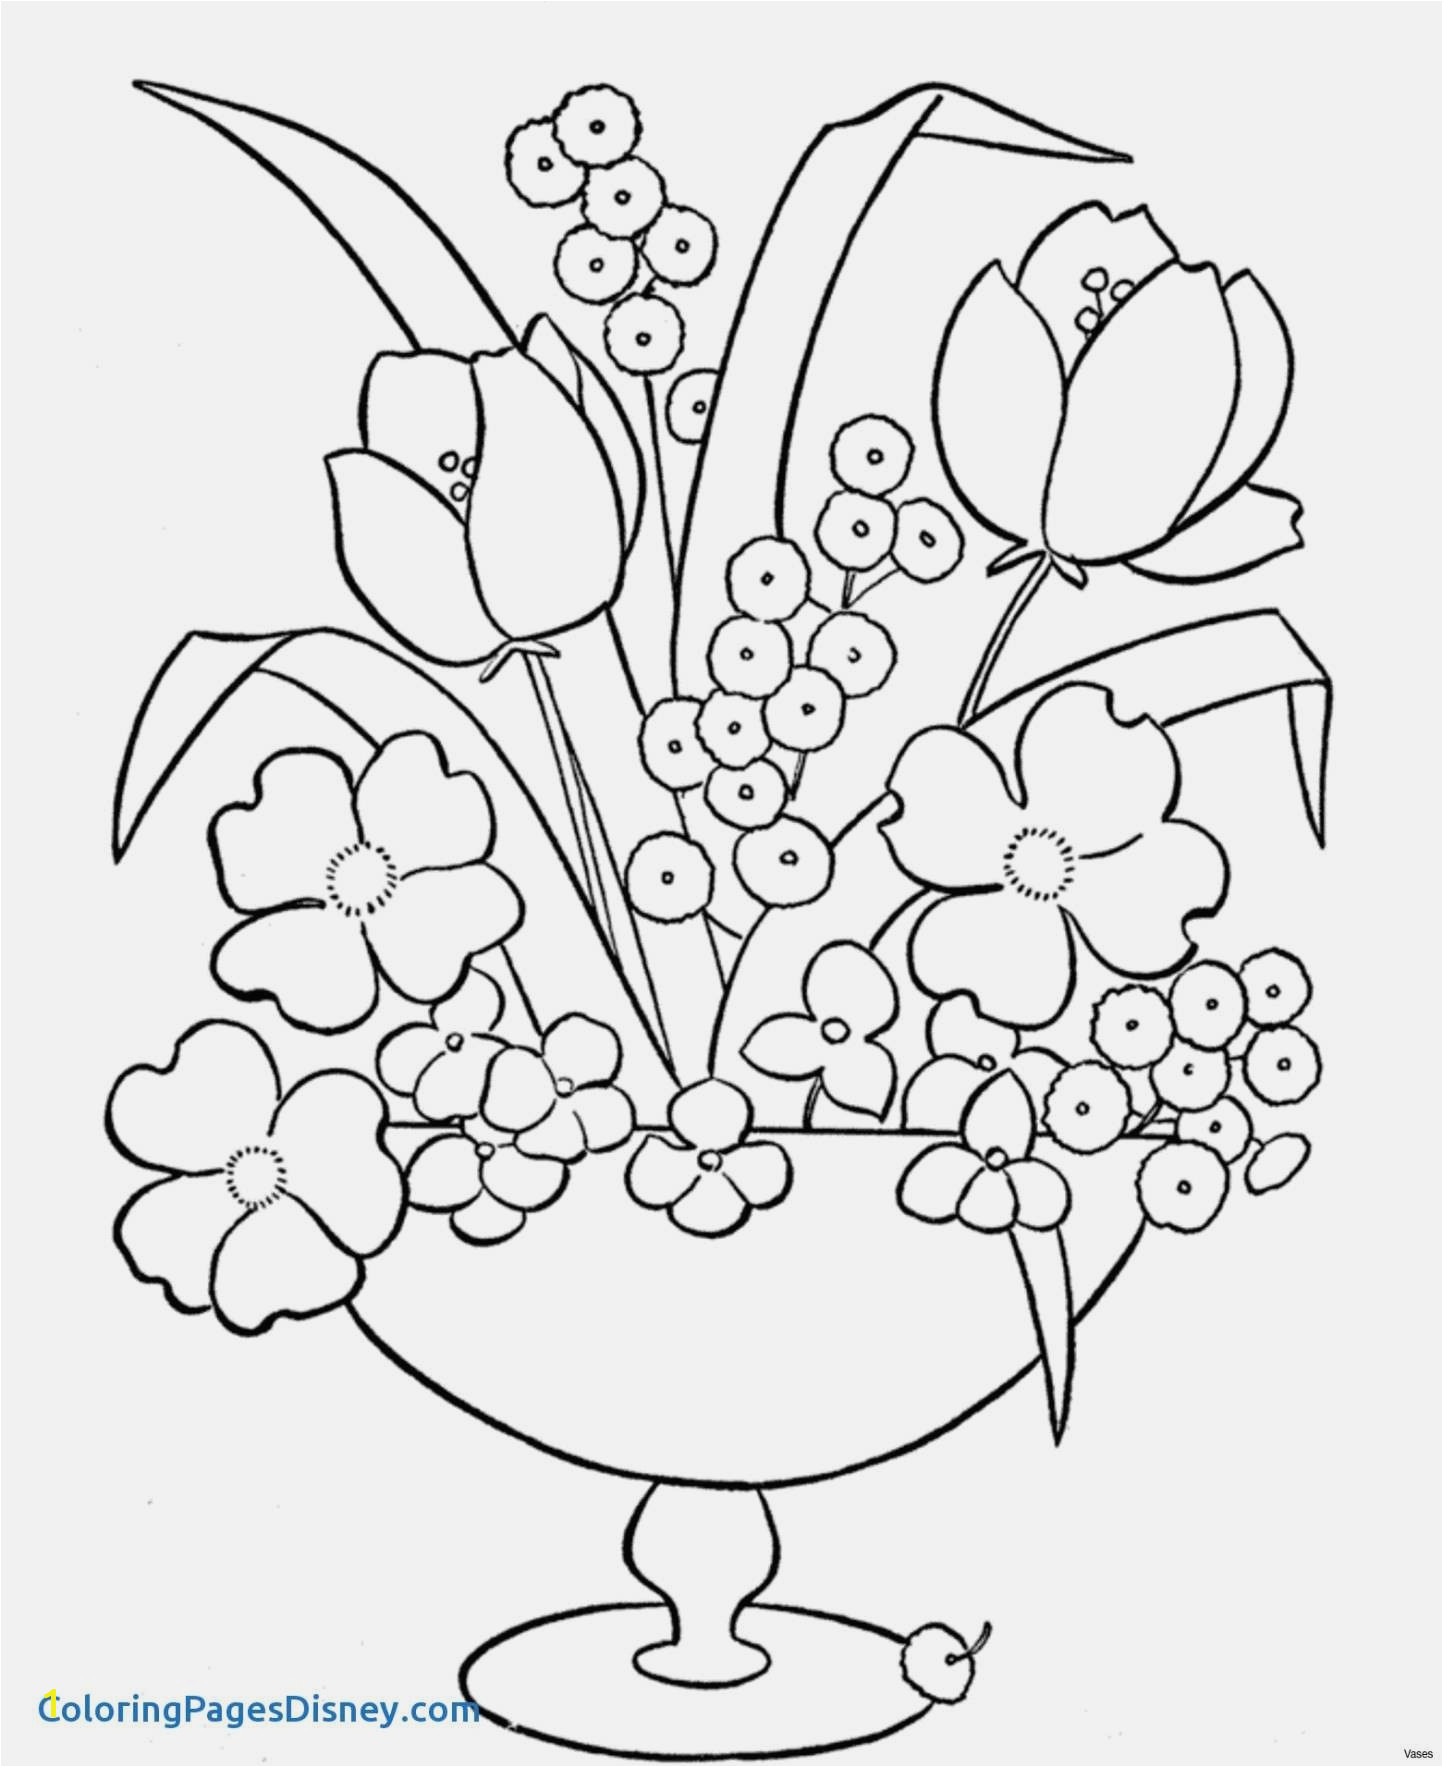 Free Fall Coloring Pages Best Ever Adult Coloring Pages Fall Cool Gallery Adult Coloring Page Fall